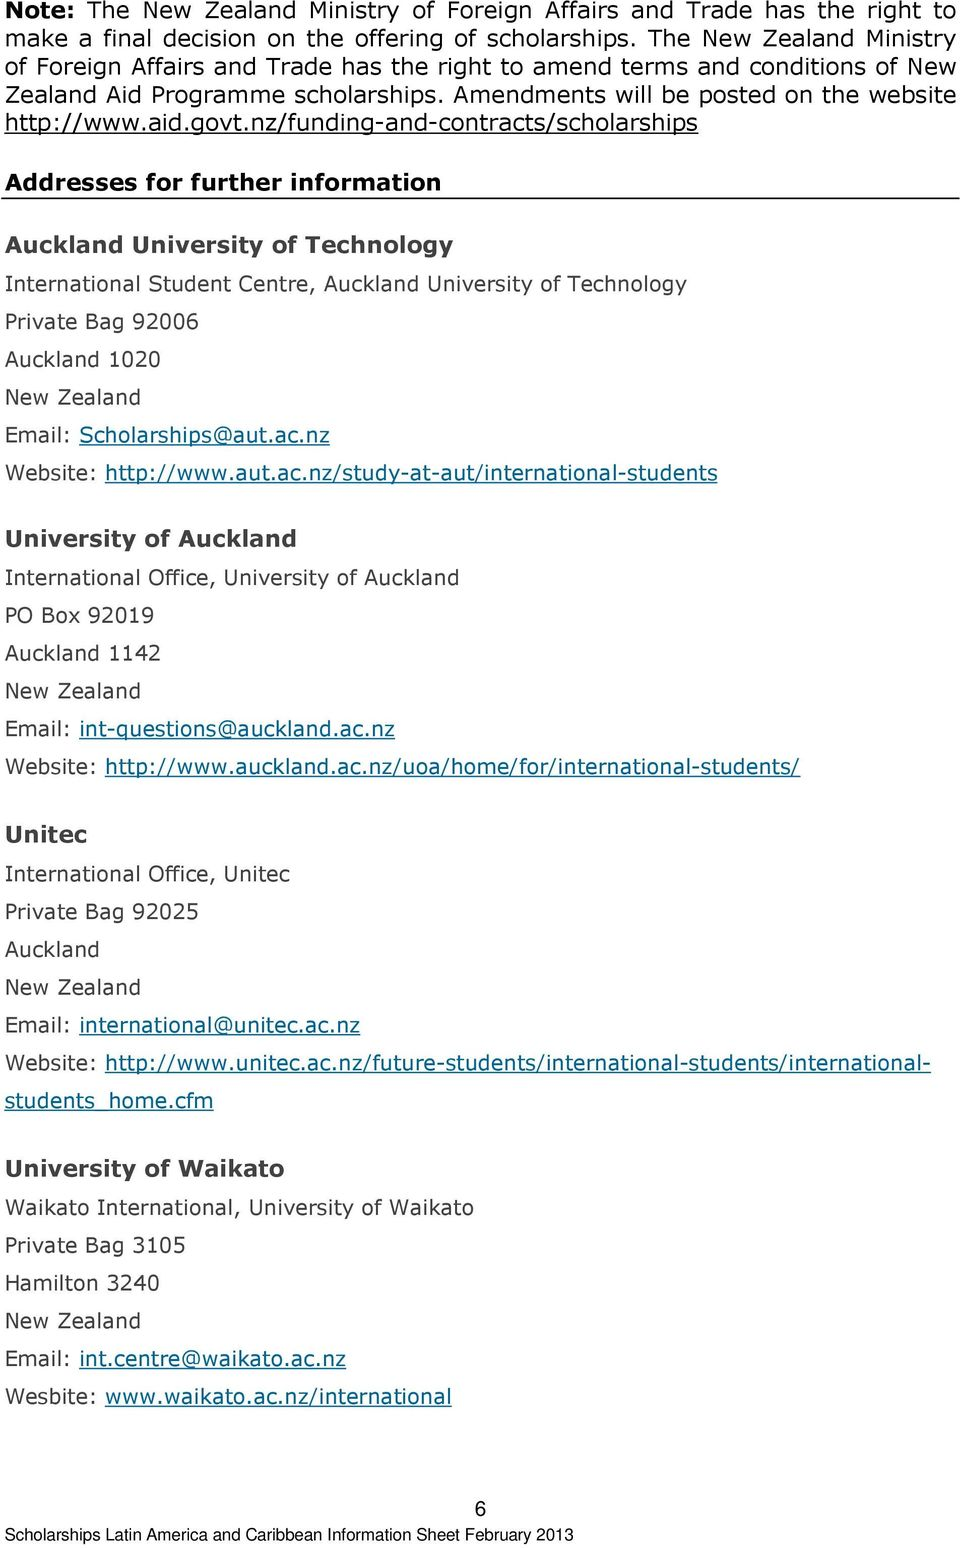 nz/funding-and-contracts/scholarships Addresses for further information Auckland University of Technology International Student Centre, Auckland University of Technology Private Bag 92006 Auckland